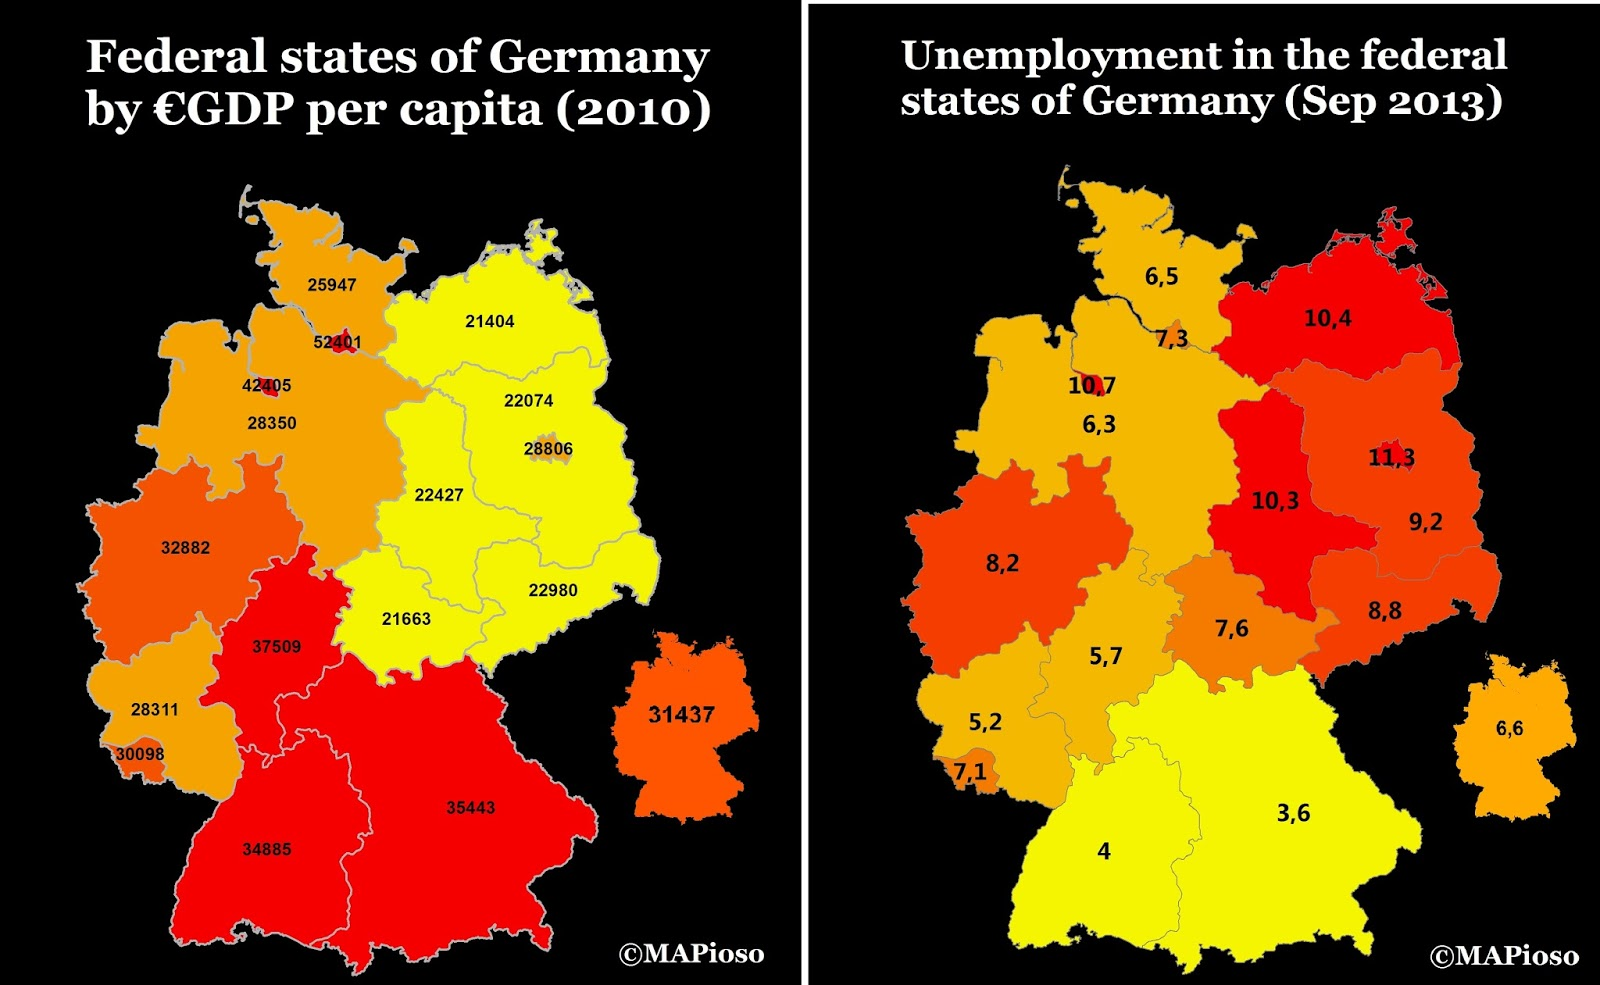 The economic inequality between the former states of West & East Germany